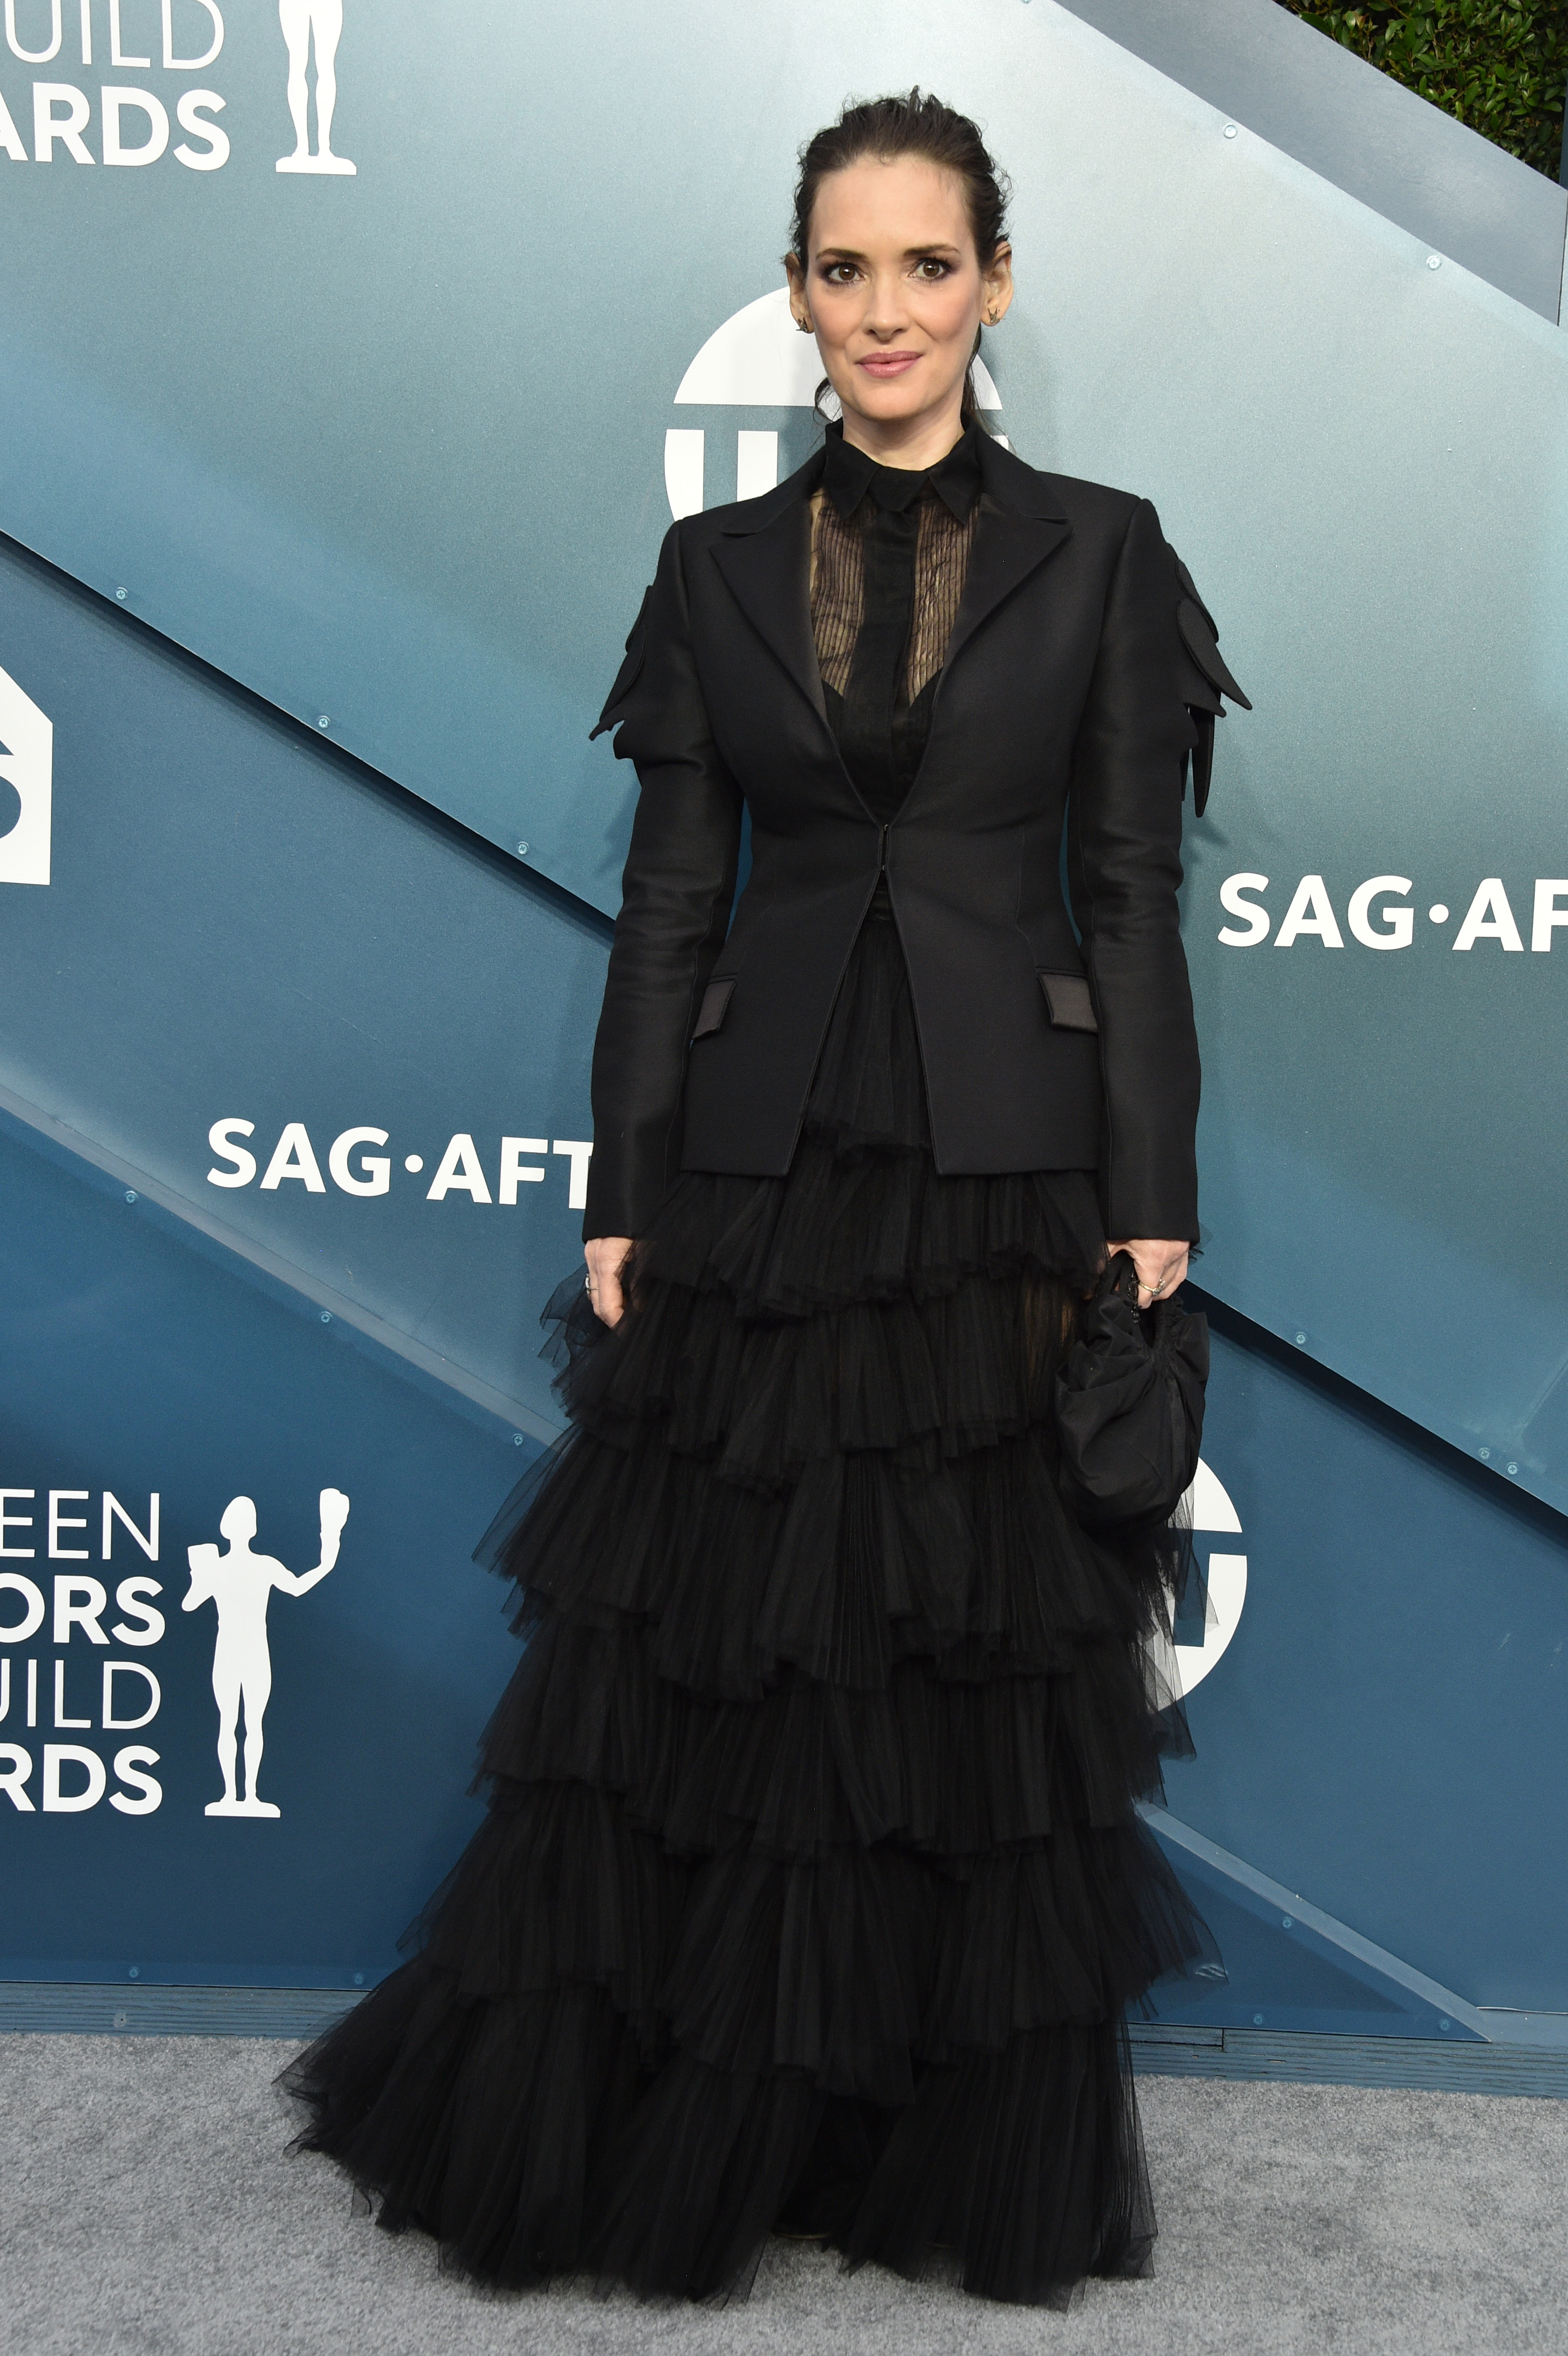 LOS ANGELES, CALIFORNIA - JANUARY 19: Winona Ryder attends the 26th Annual Screen ActorsGuild Awards at The Shrine Auditorium on January 19, 2020 in Los Angeles, California. 721430 (Photo by Gregg DeGuire/Getty Images for Turner)